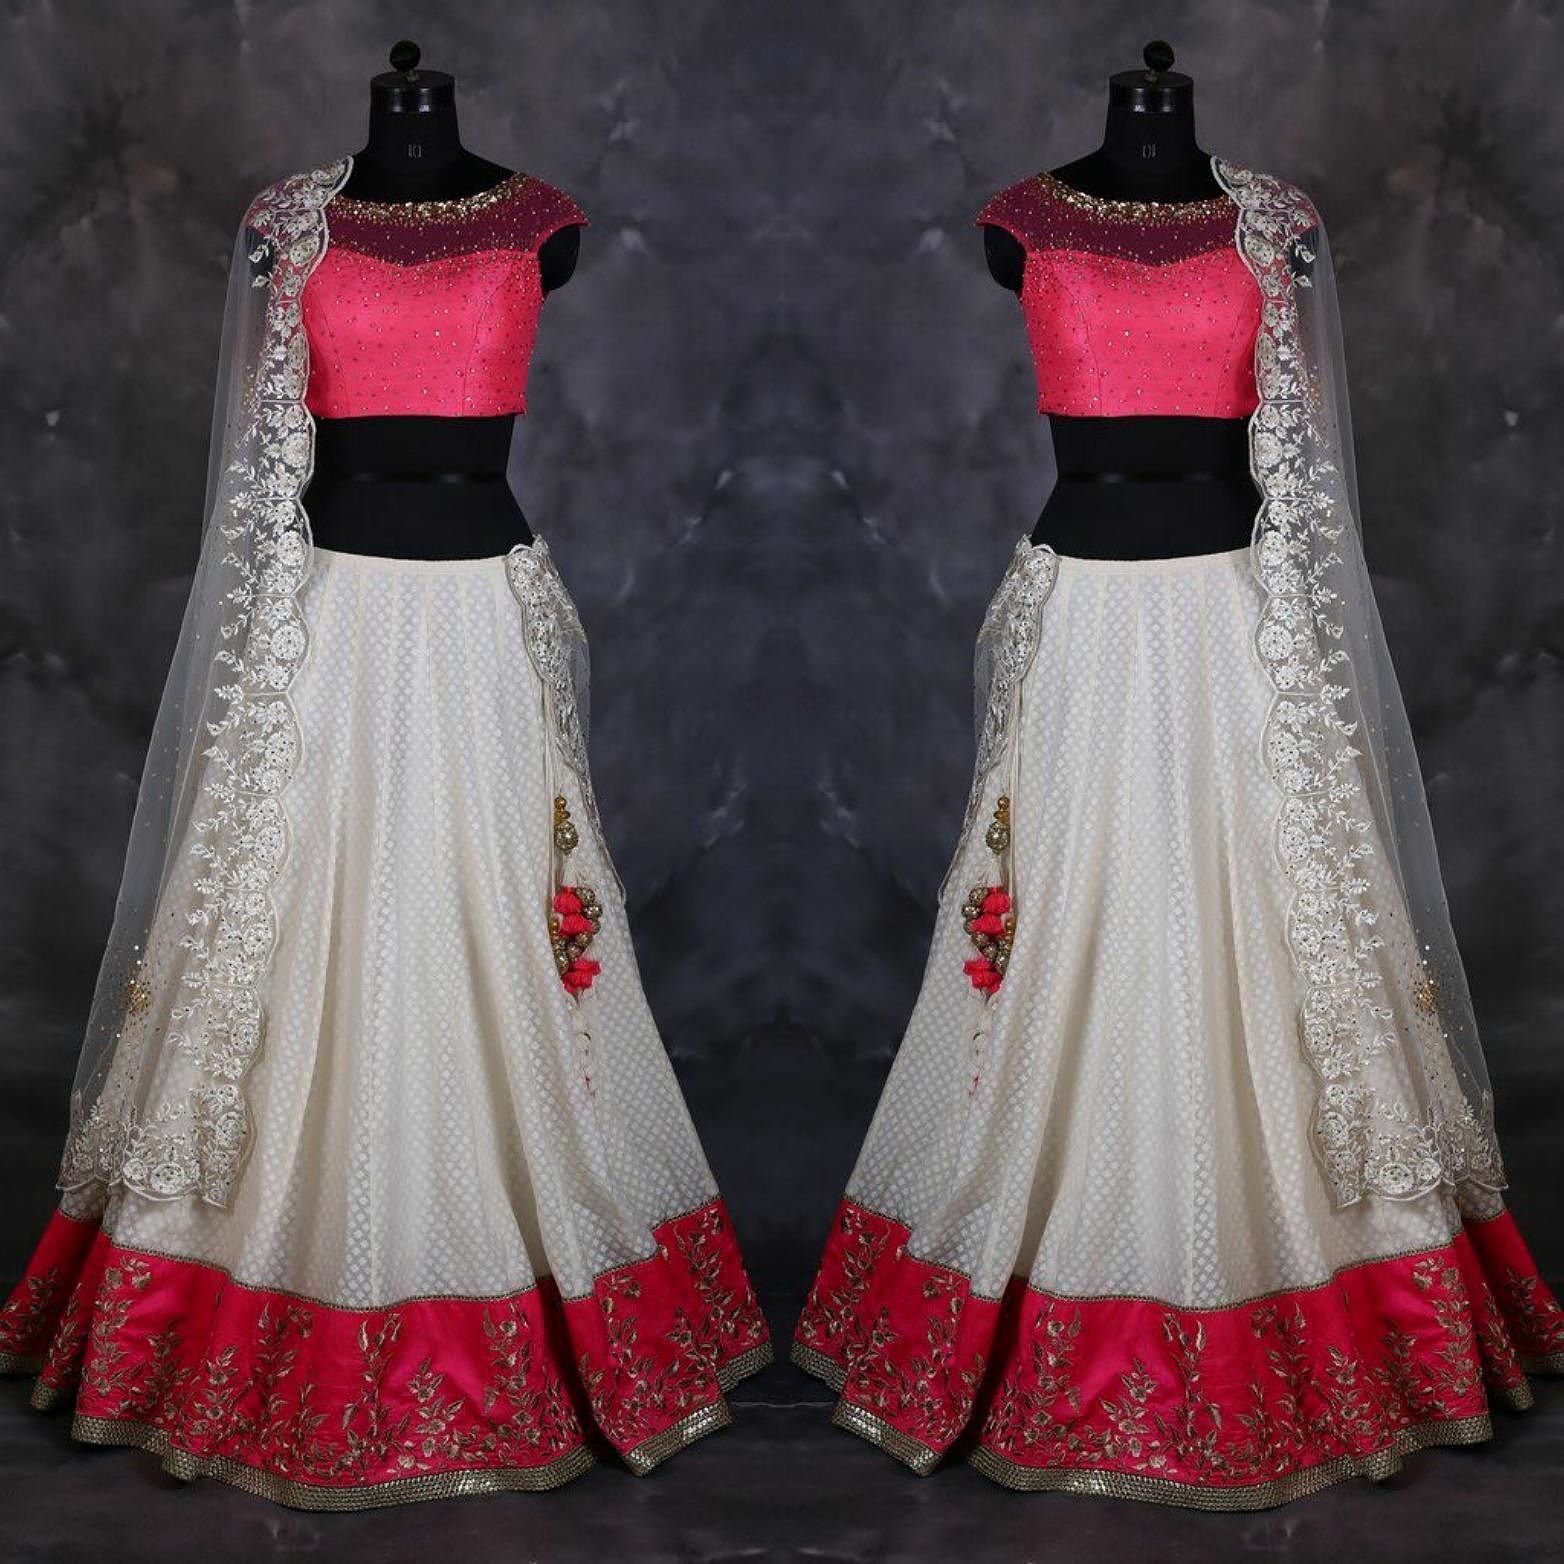 White and Pink Art Silk & Net Lehenga Product Info : LEHENGA: ART SILK BLOUSE : NET & BANGLORI SILK; DUPATTA:NET  Price : 1600 INR Only ! #Booknow  World Wide Shipping Available !  PayPal / WU Accepted  C O D Available In India ! Shipping Charges Extra  Stitching Service Available  To order / enquiry  Contact Us : 91 9054562754 ( WhatsApp Only )  #bridalwear #weddingdress #allthingsbridal #weddingtheme #punjabisuit #igers #indianwear #desicouture #photooftheday #style #trends #ootd…